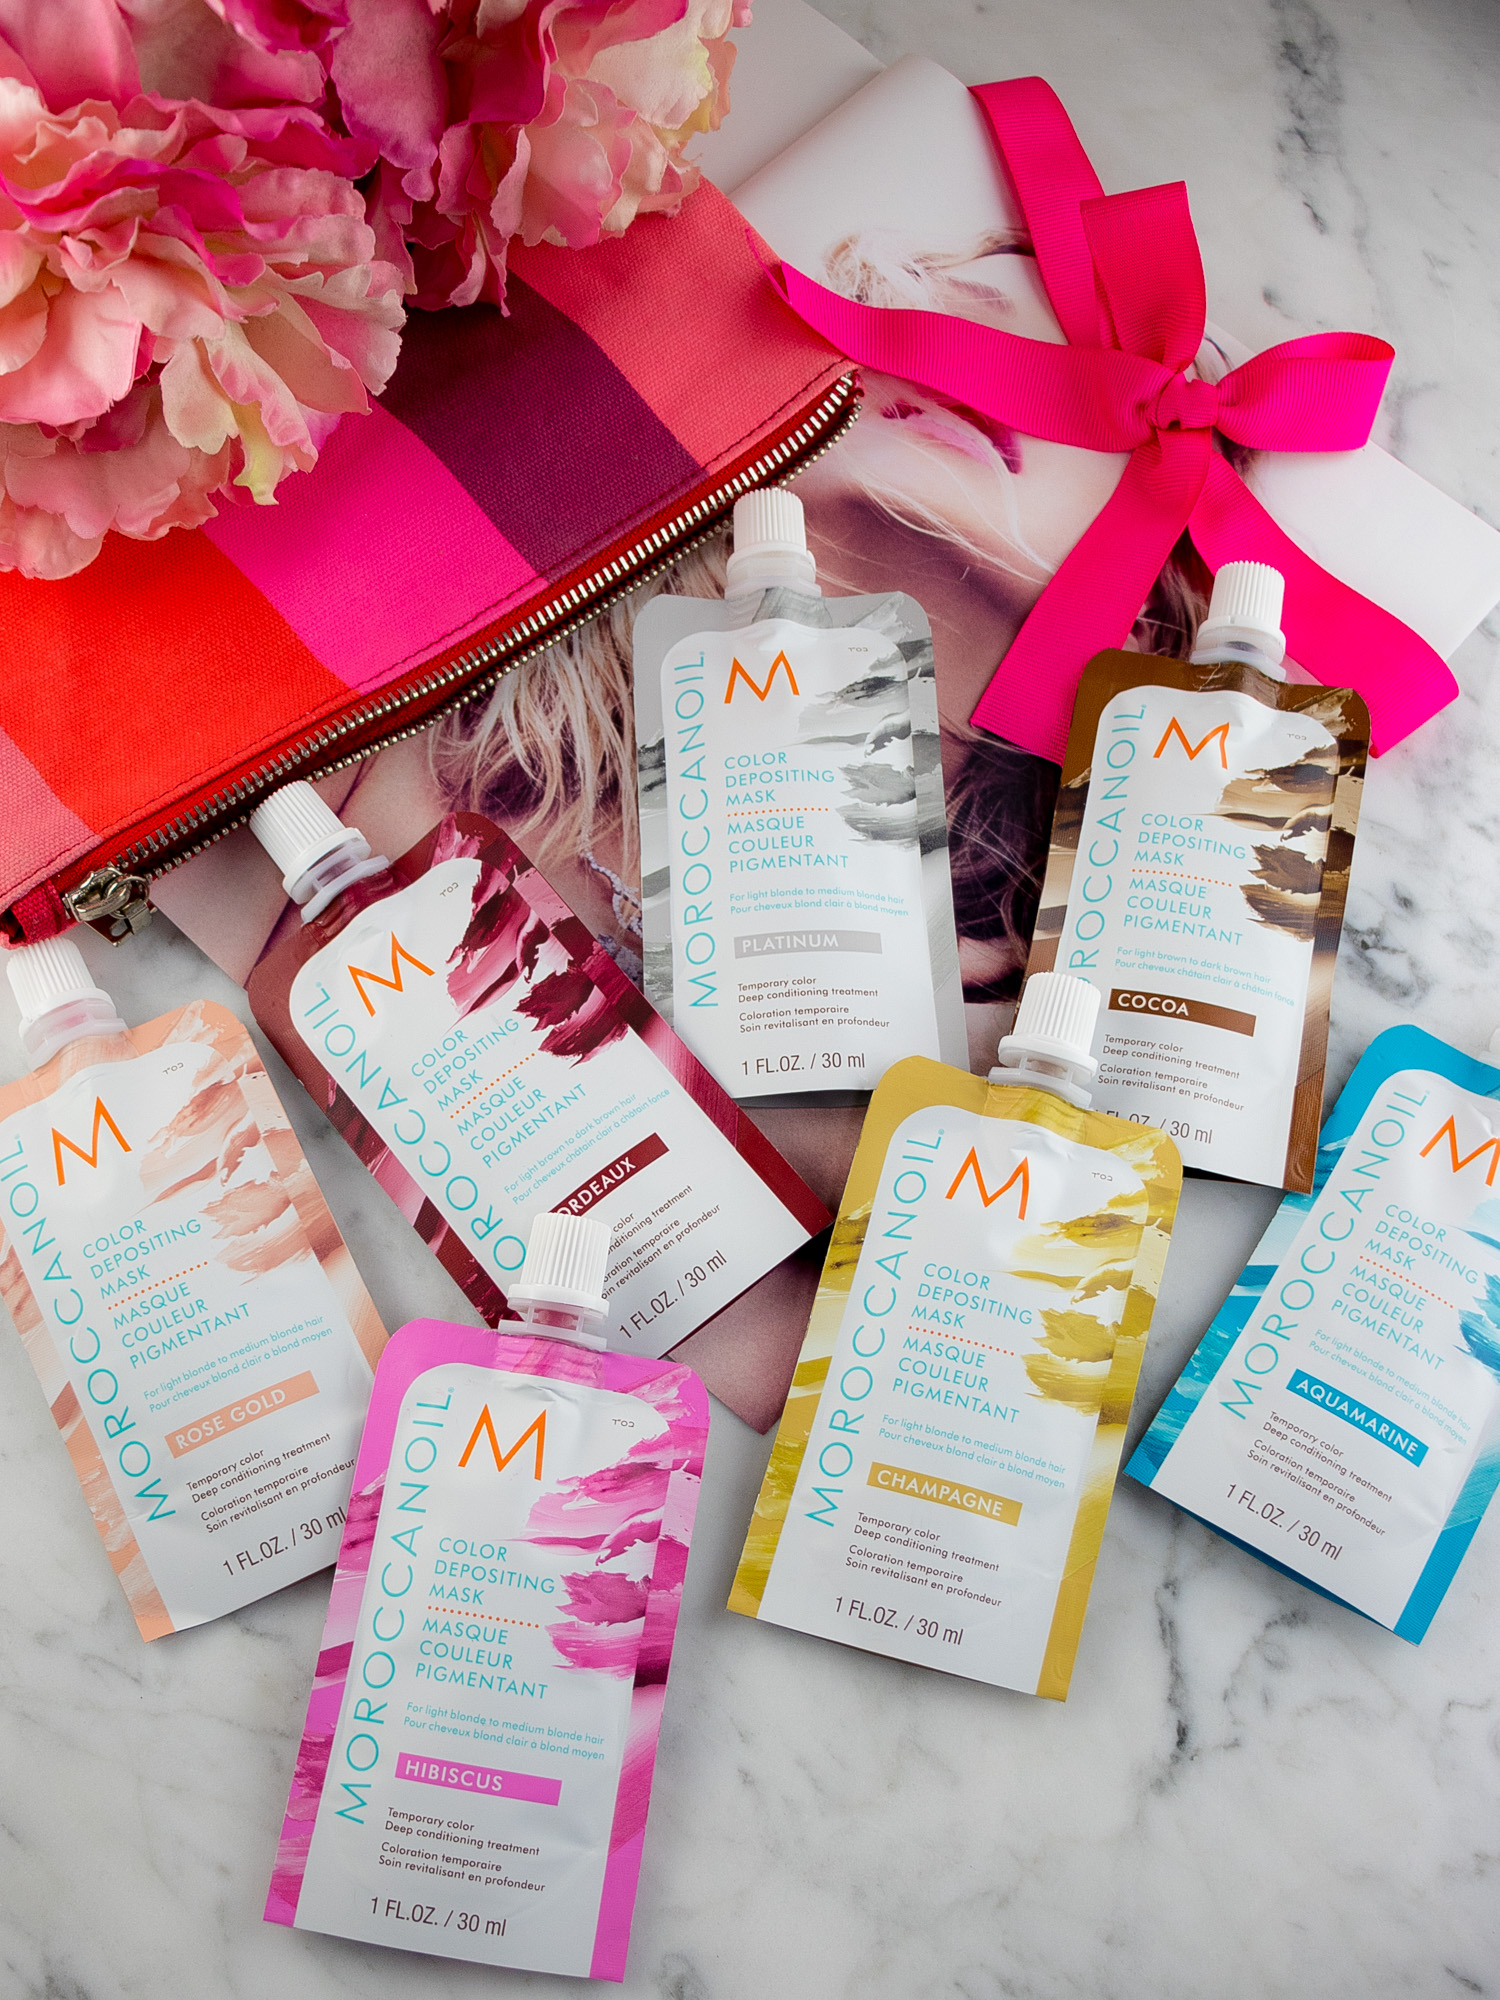 Moroccanoil Color Depositing Mask Collection